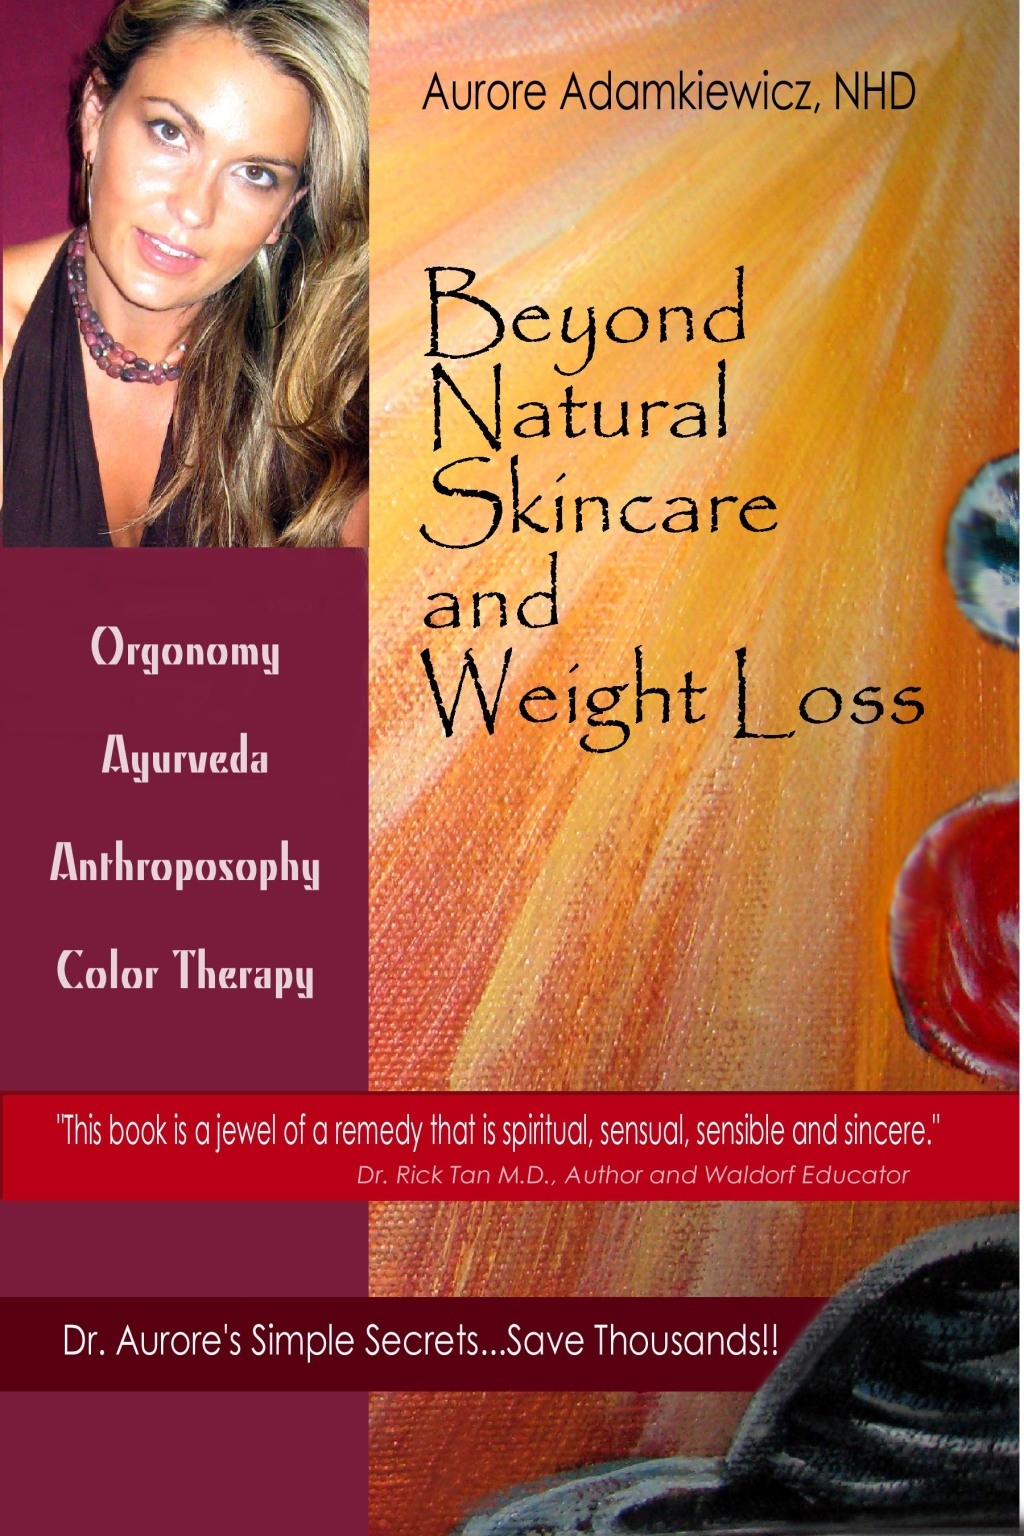 Beyond Natural Skincare and Weightloss